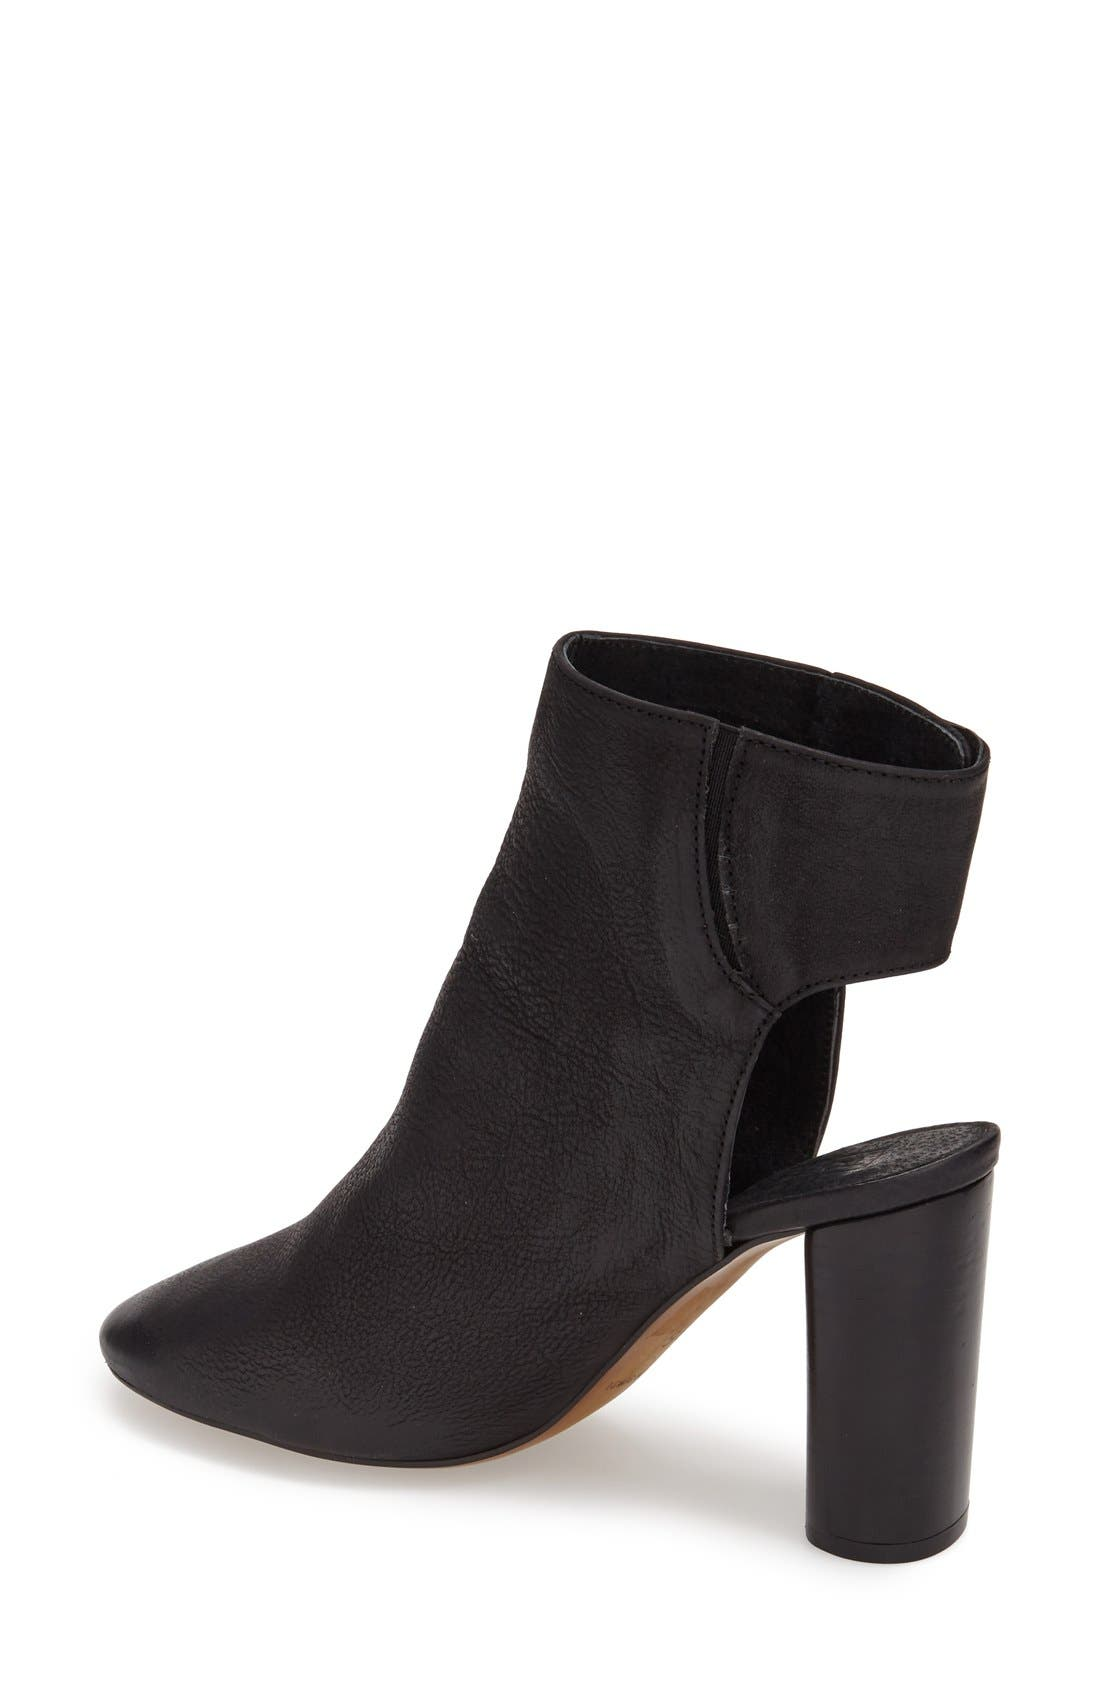 Alternate Image 2  - Topshop 'Maid' Leather Ankle Boot (Women)